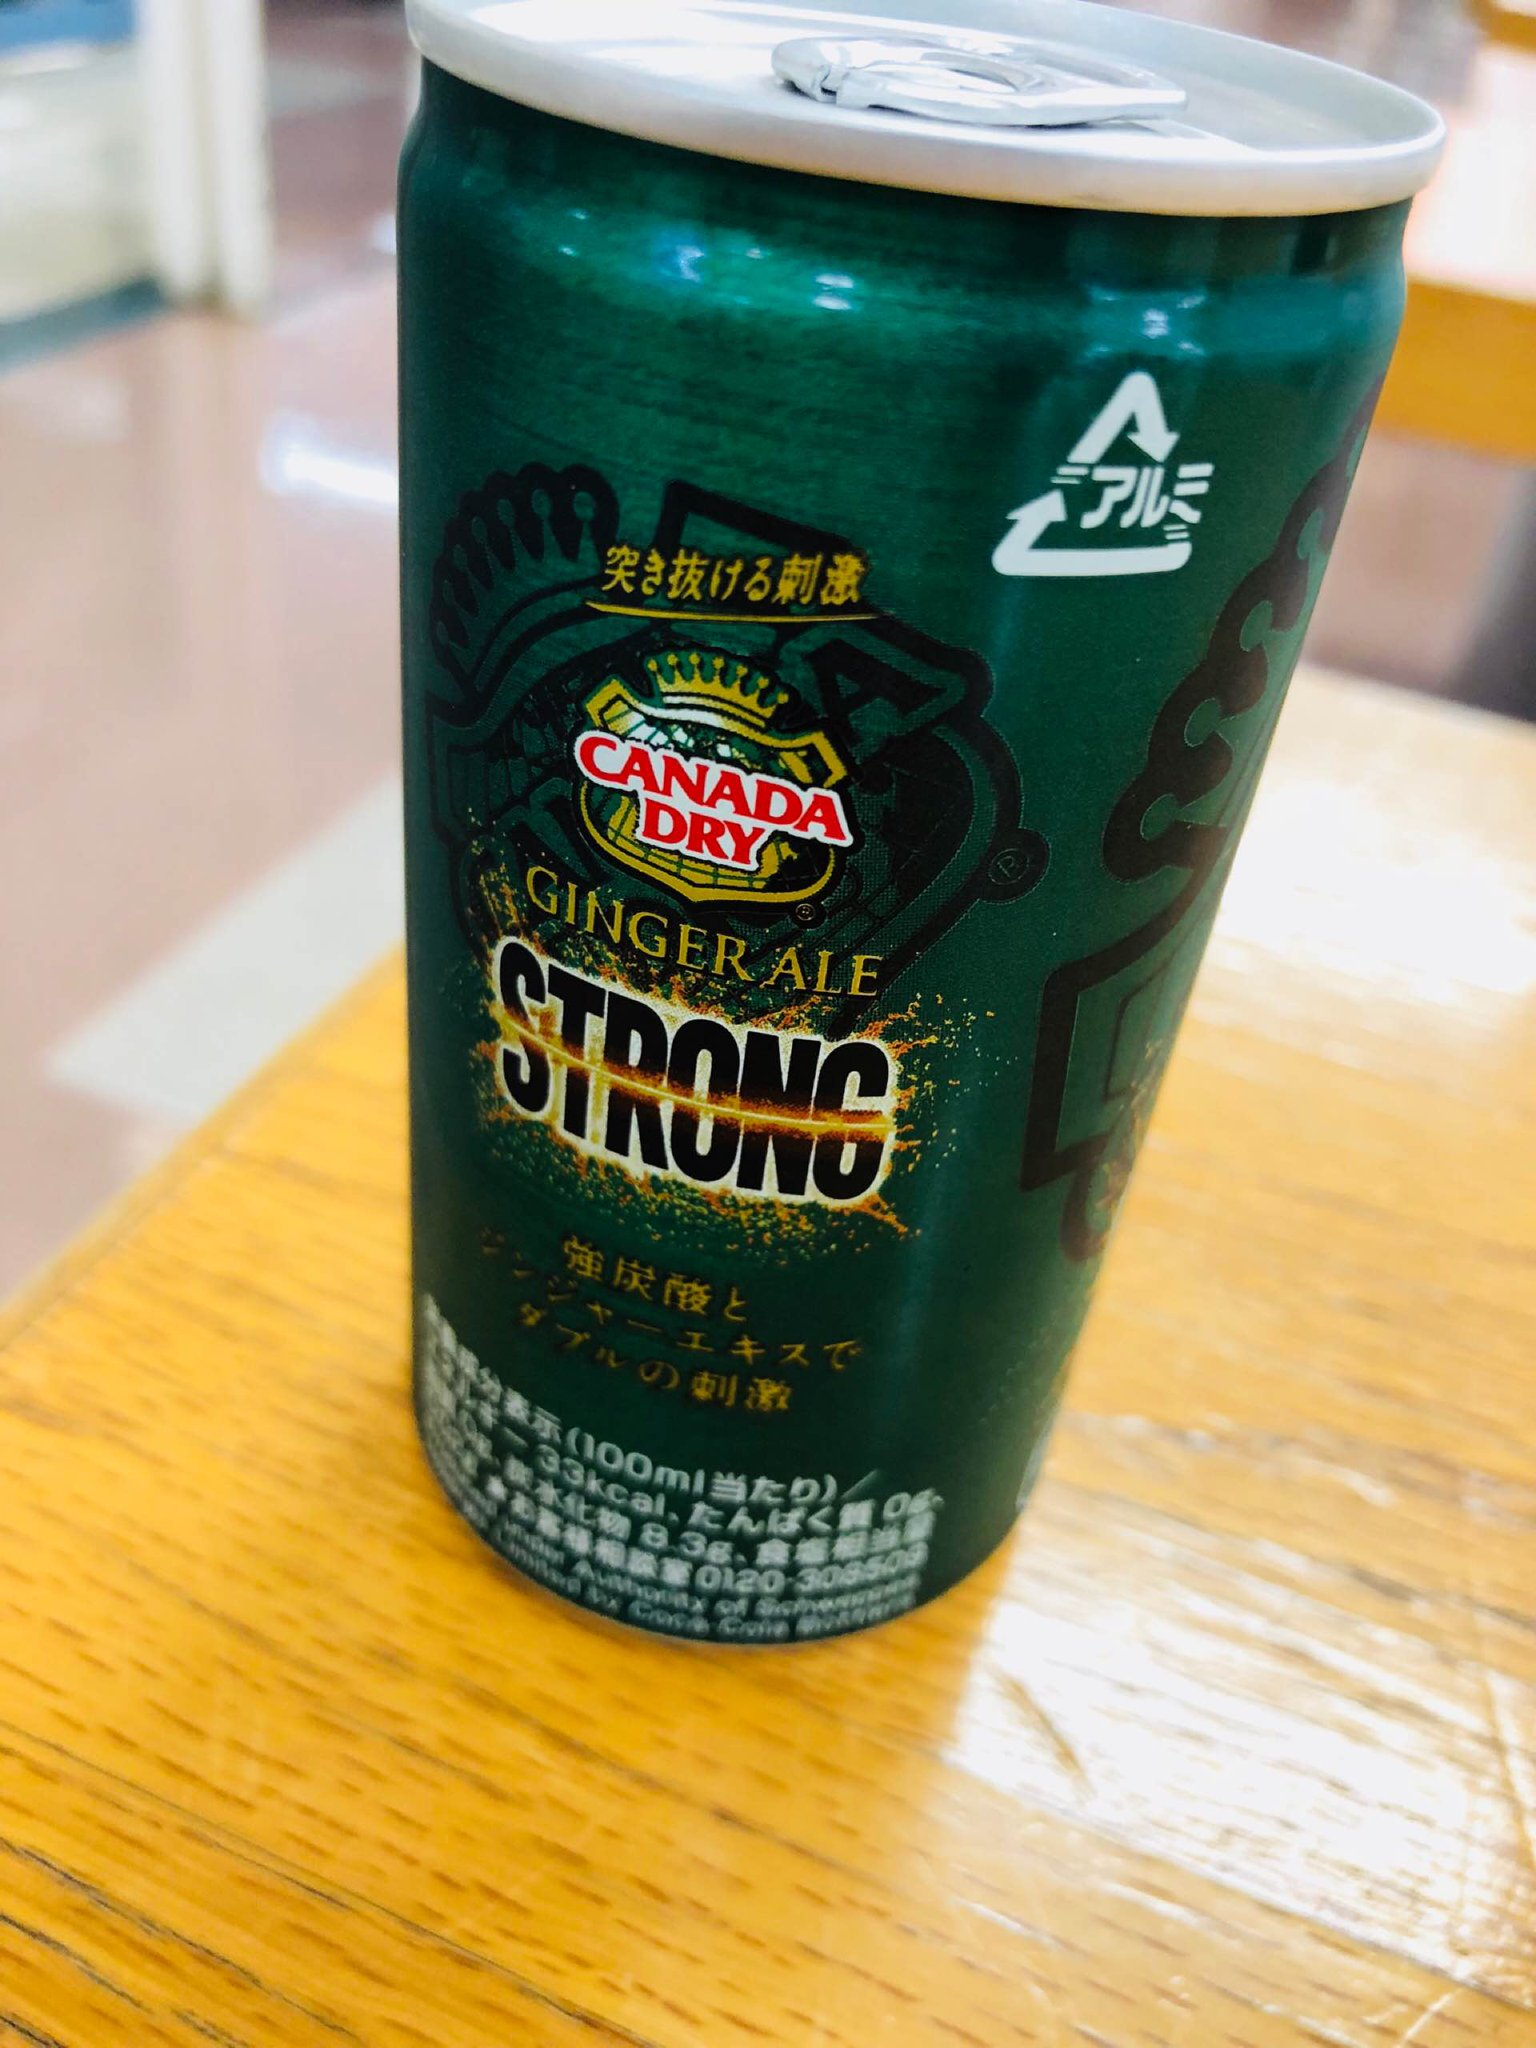 CANADA DRY GINGER ALE STRONG 自販機限定販売らしい https://t.co/rpnbIXbUzz